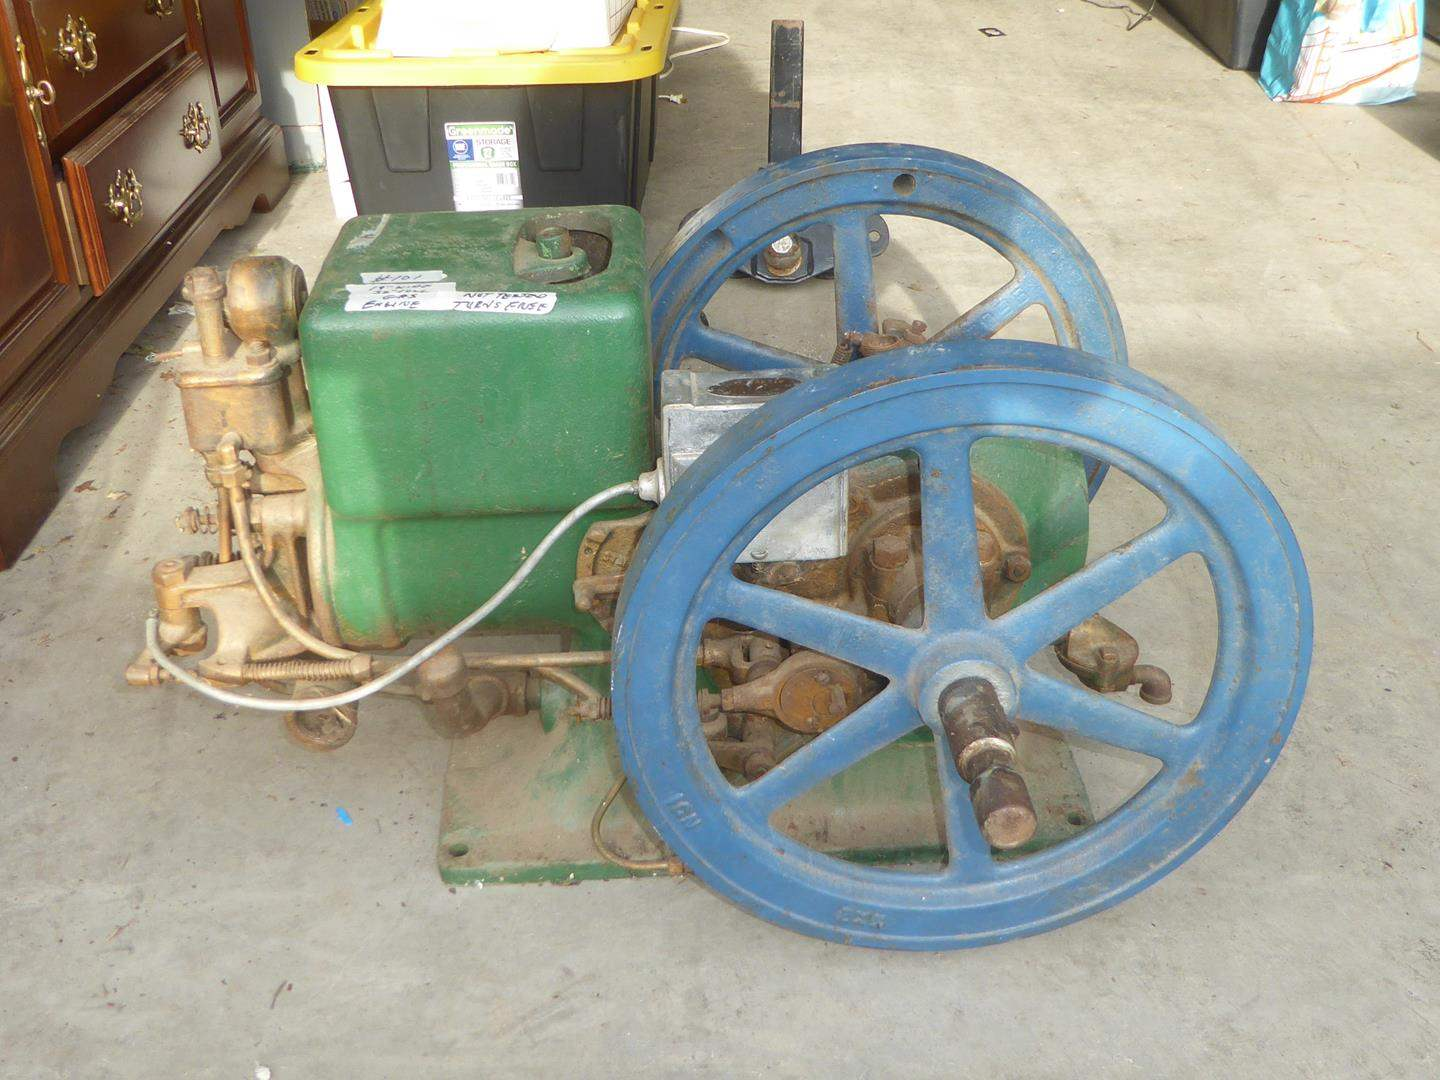 Lot # 101 - Antique Single Cylinder Gas Engine Maybe Hit Miss - Not Tested - Turns Freely (main image)